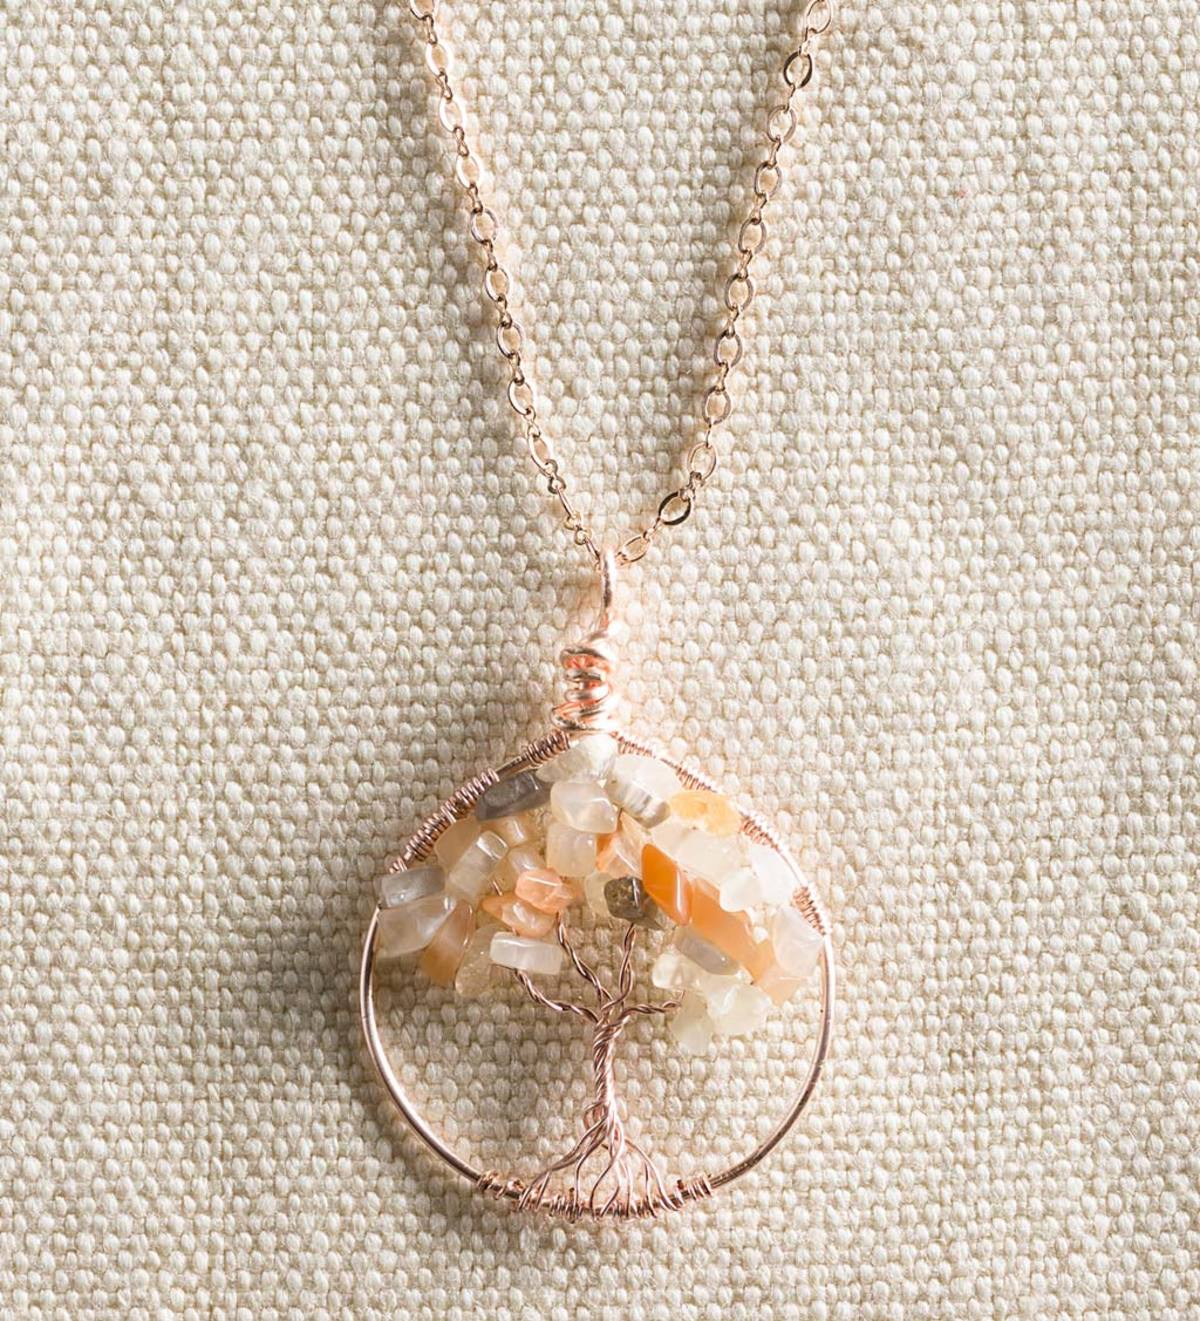 Spiritual sacred symbol jewel  with pendant and necklace Tao Tree of Life in 18 carat rose gold on 925 silver acquamarine mother of pearl